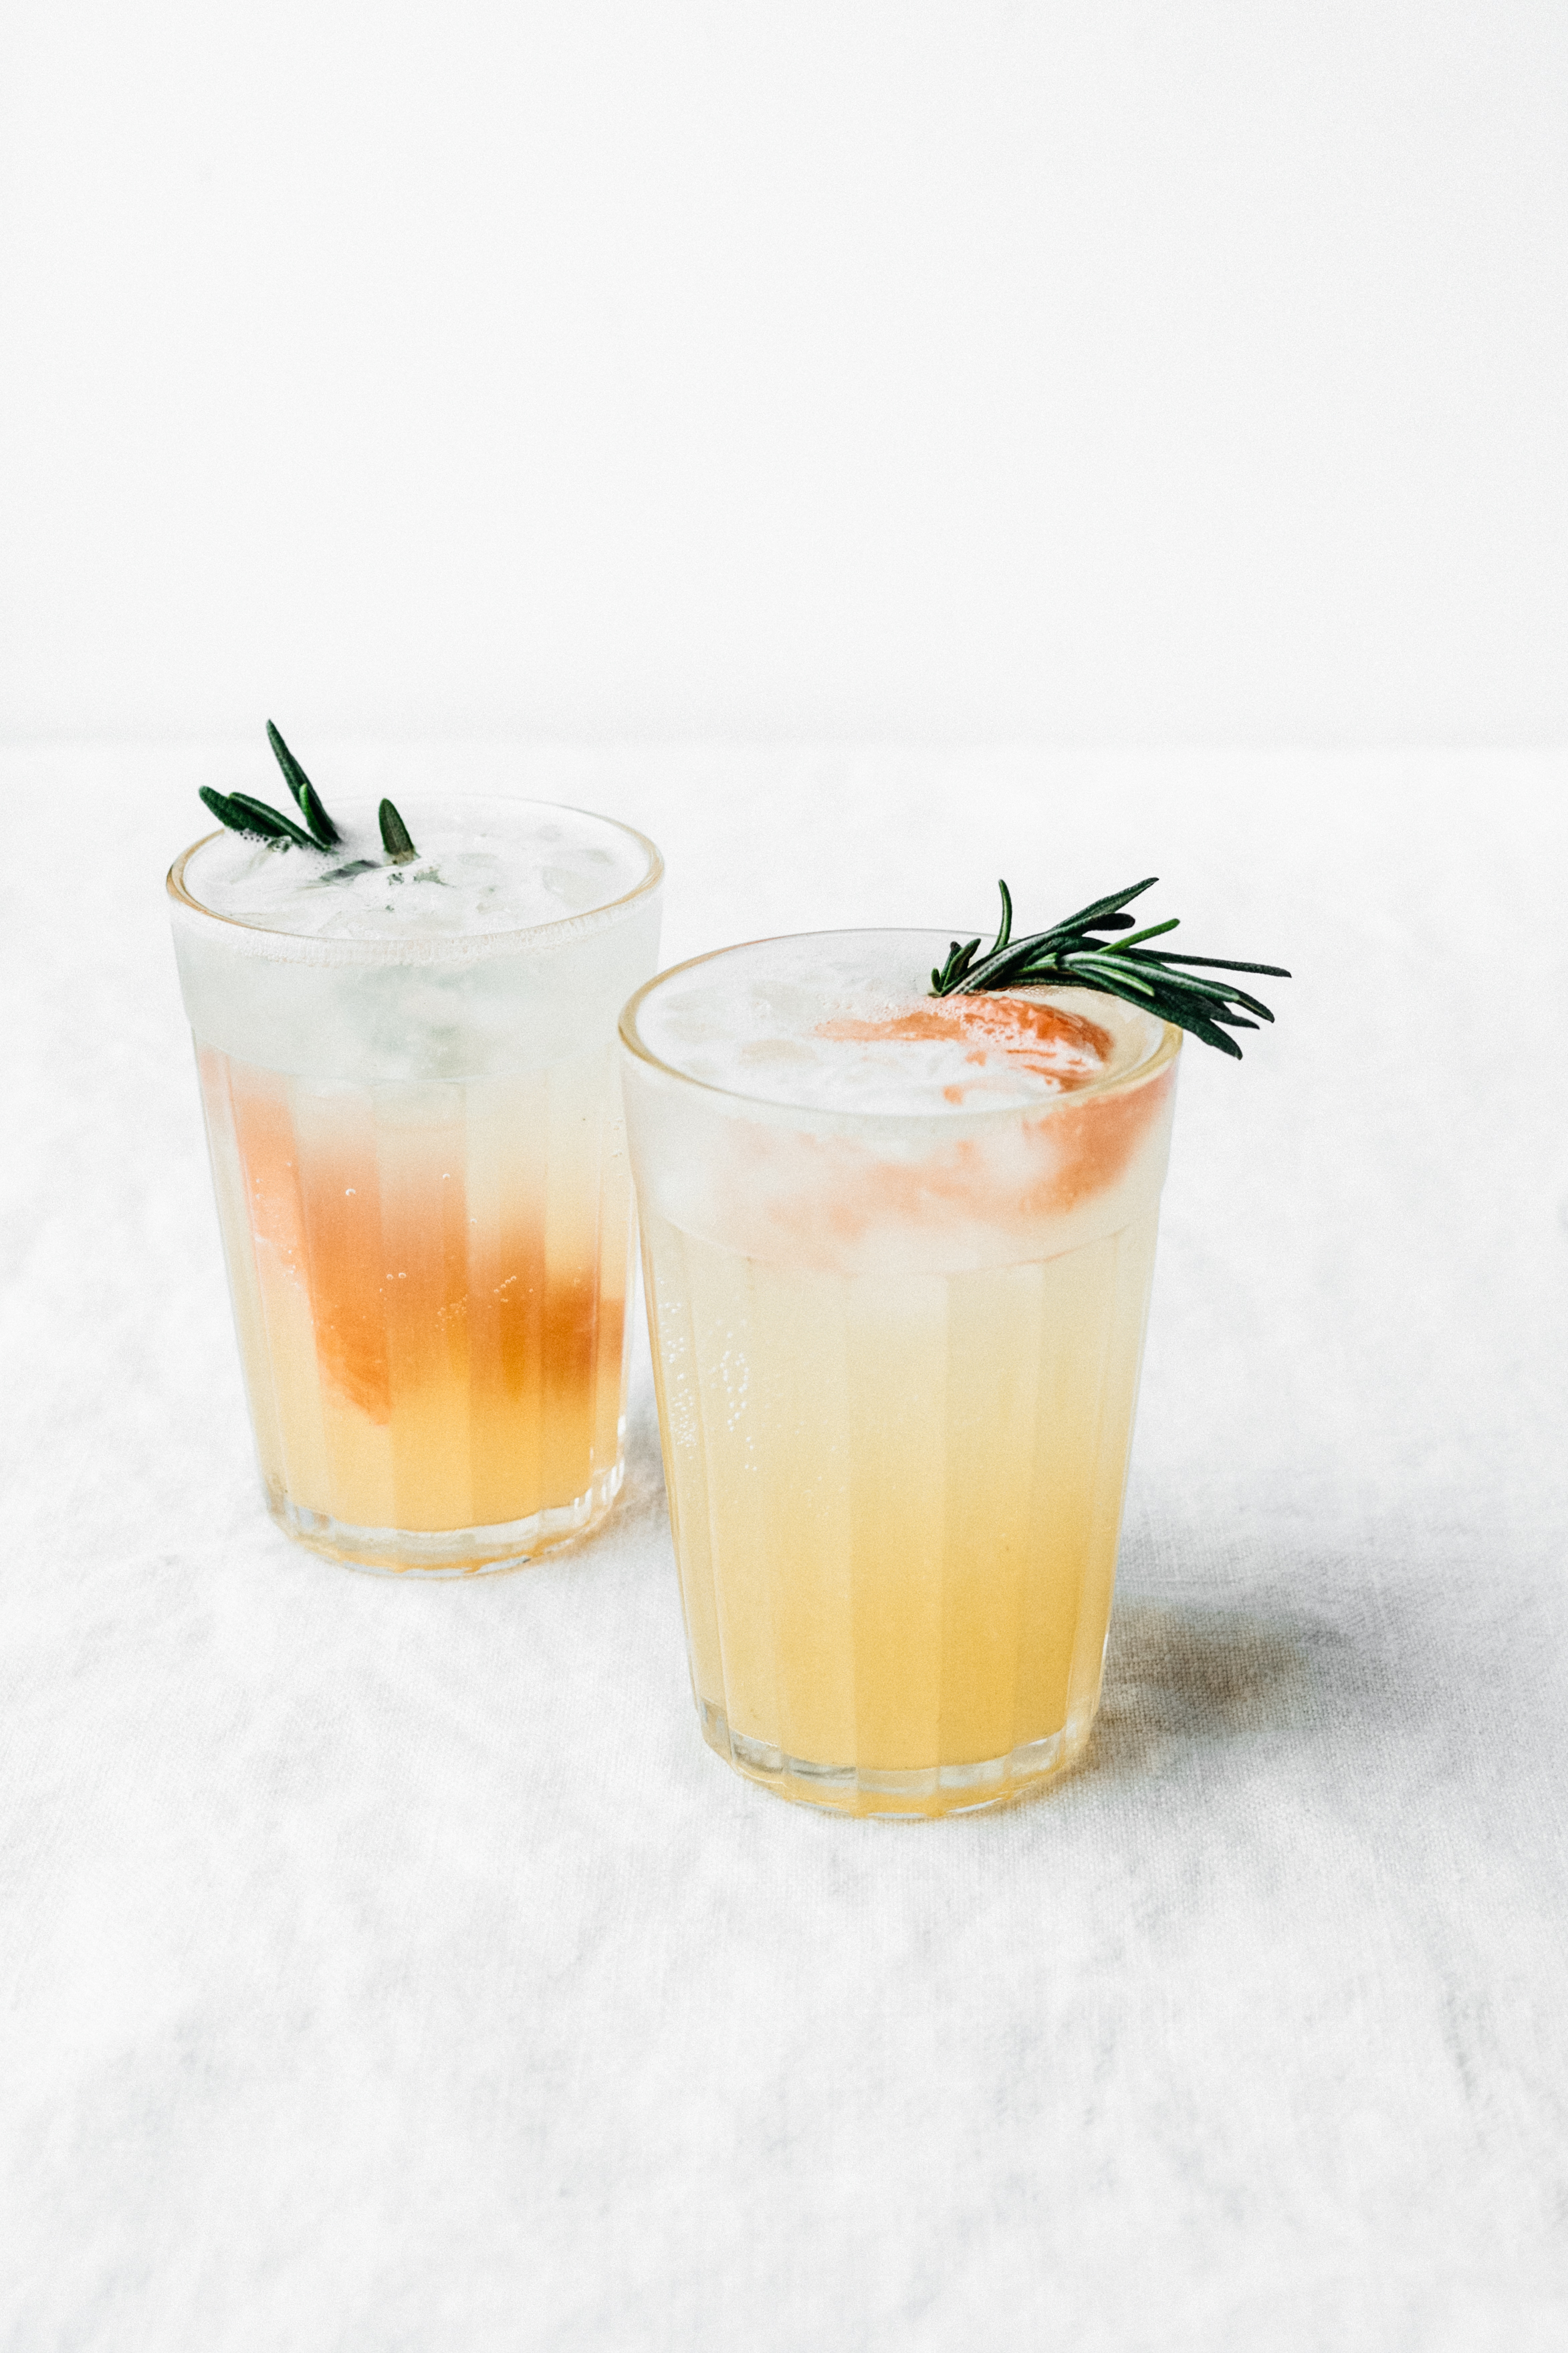 Rosemary, Honey, and Grapefruit Spritzer | TENDING the TABLE